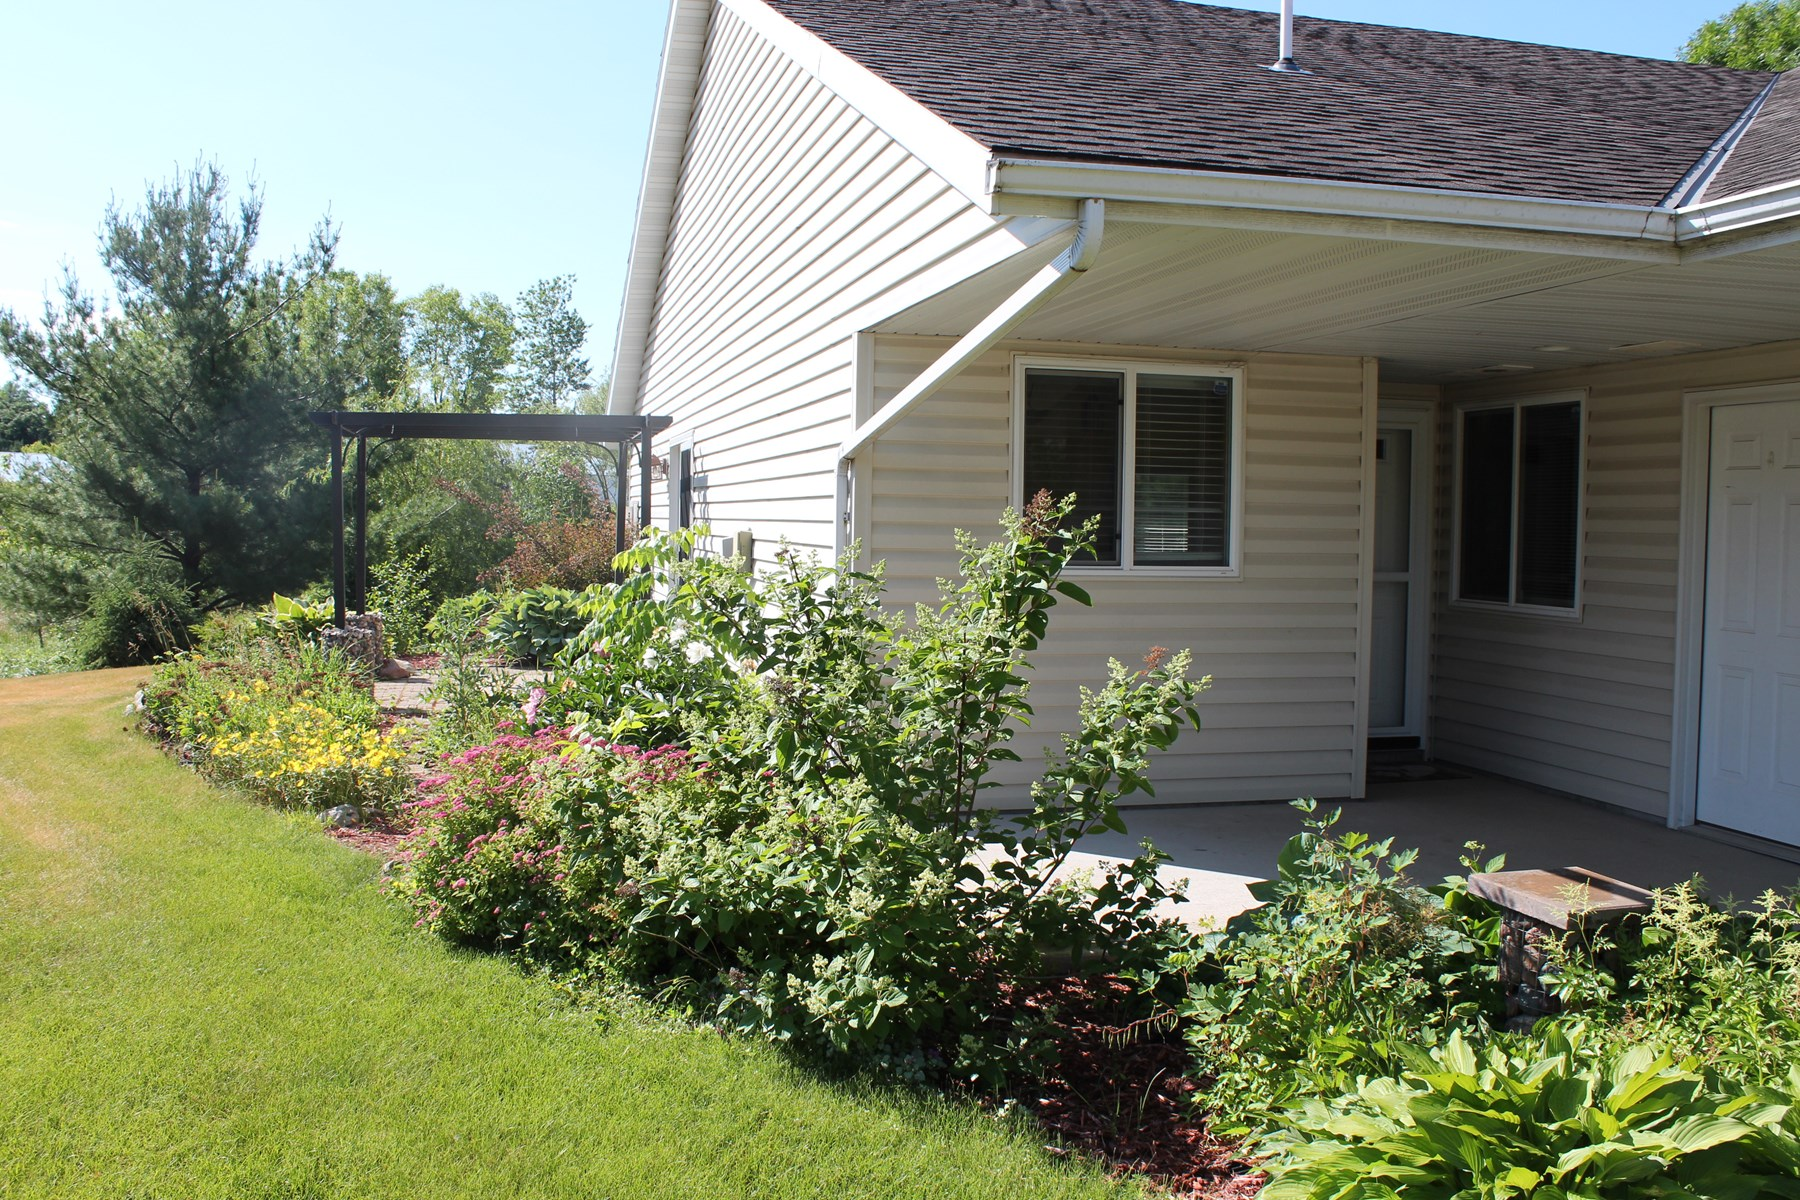 2BR/2BA Twin Home For Sale in Milaca